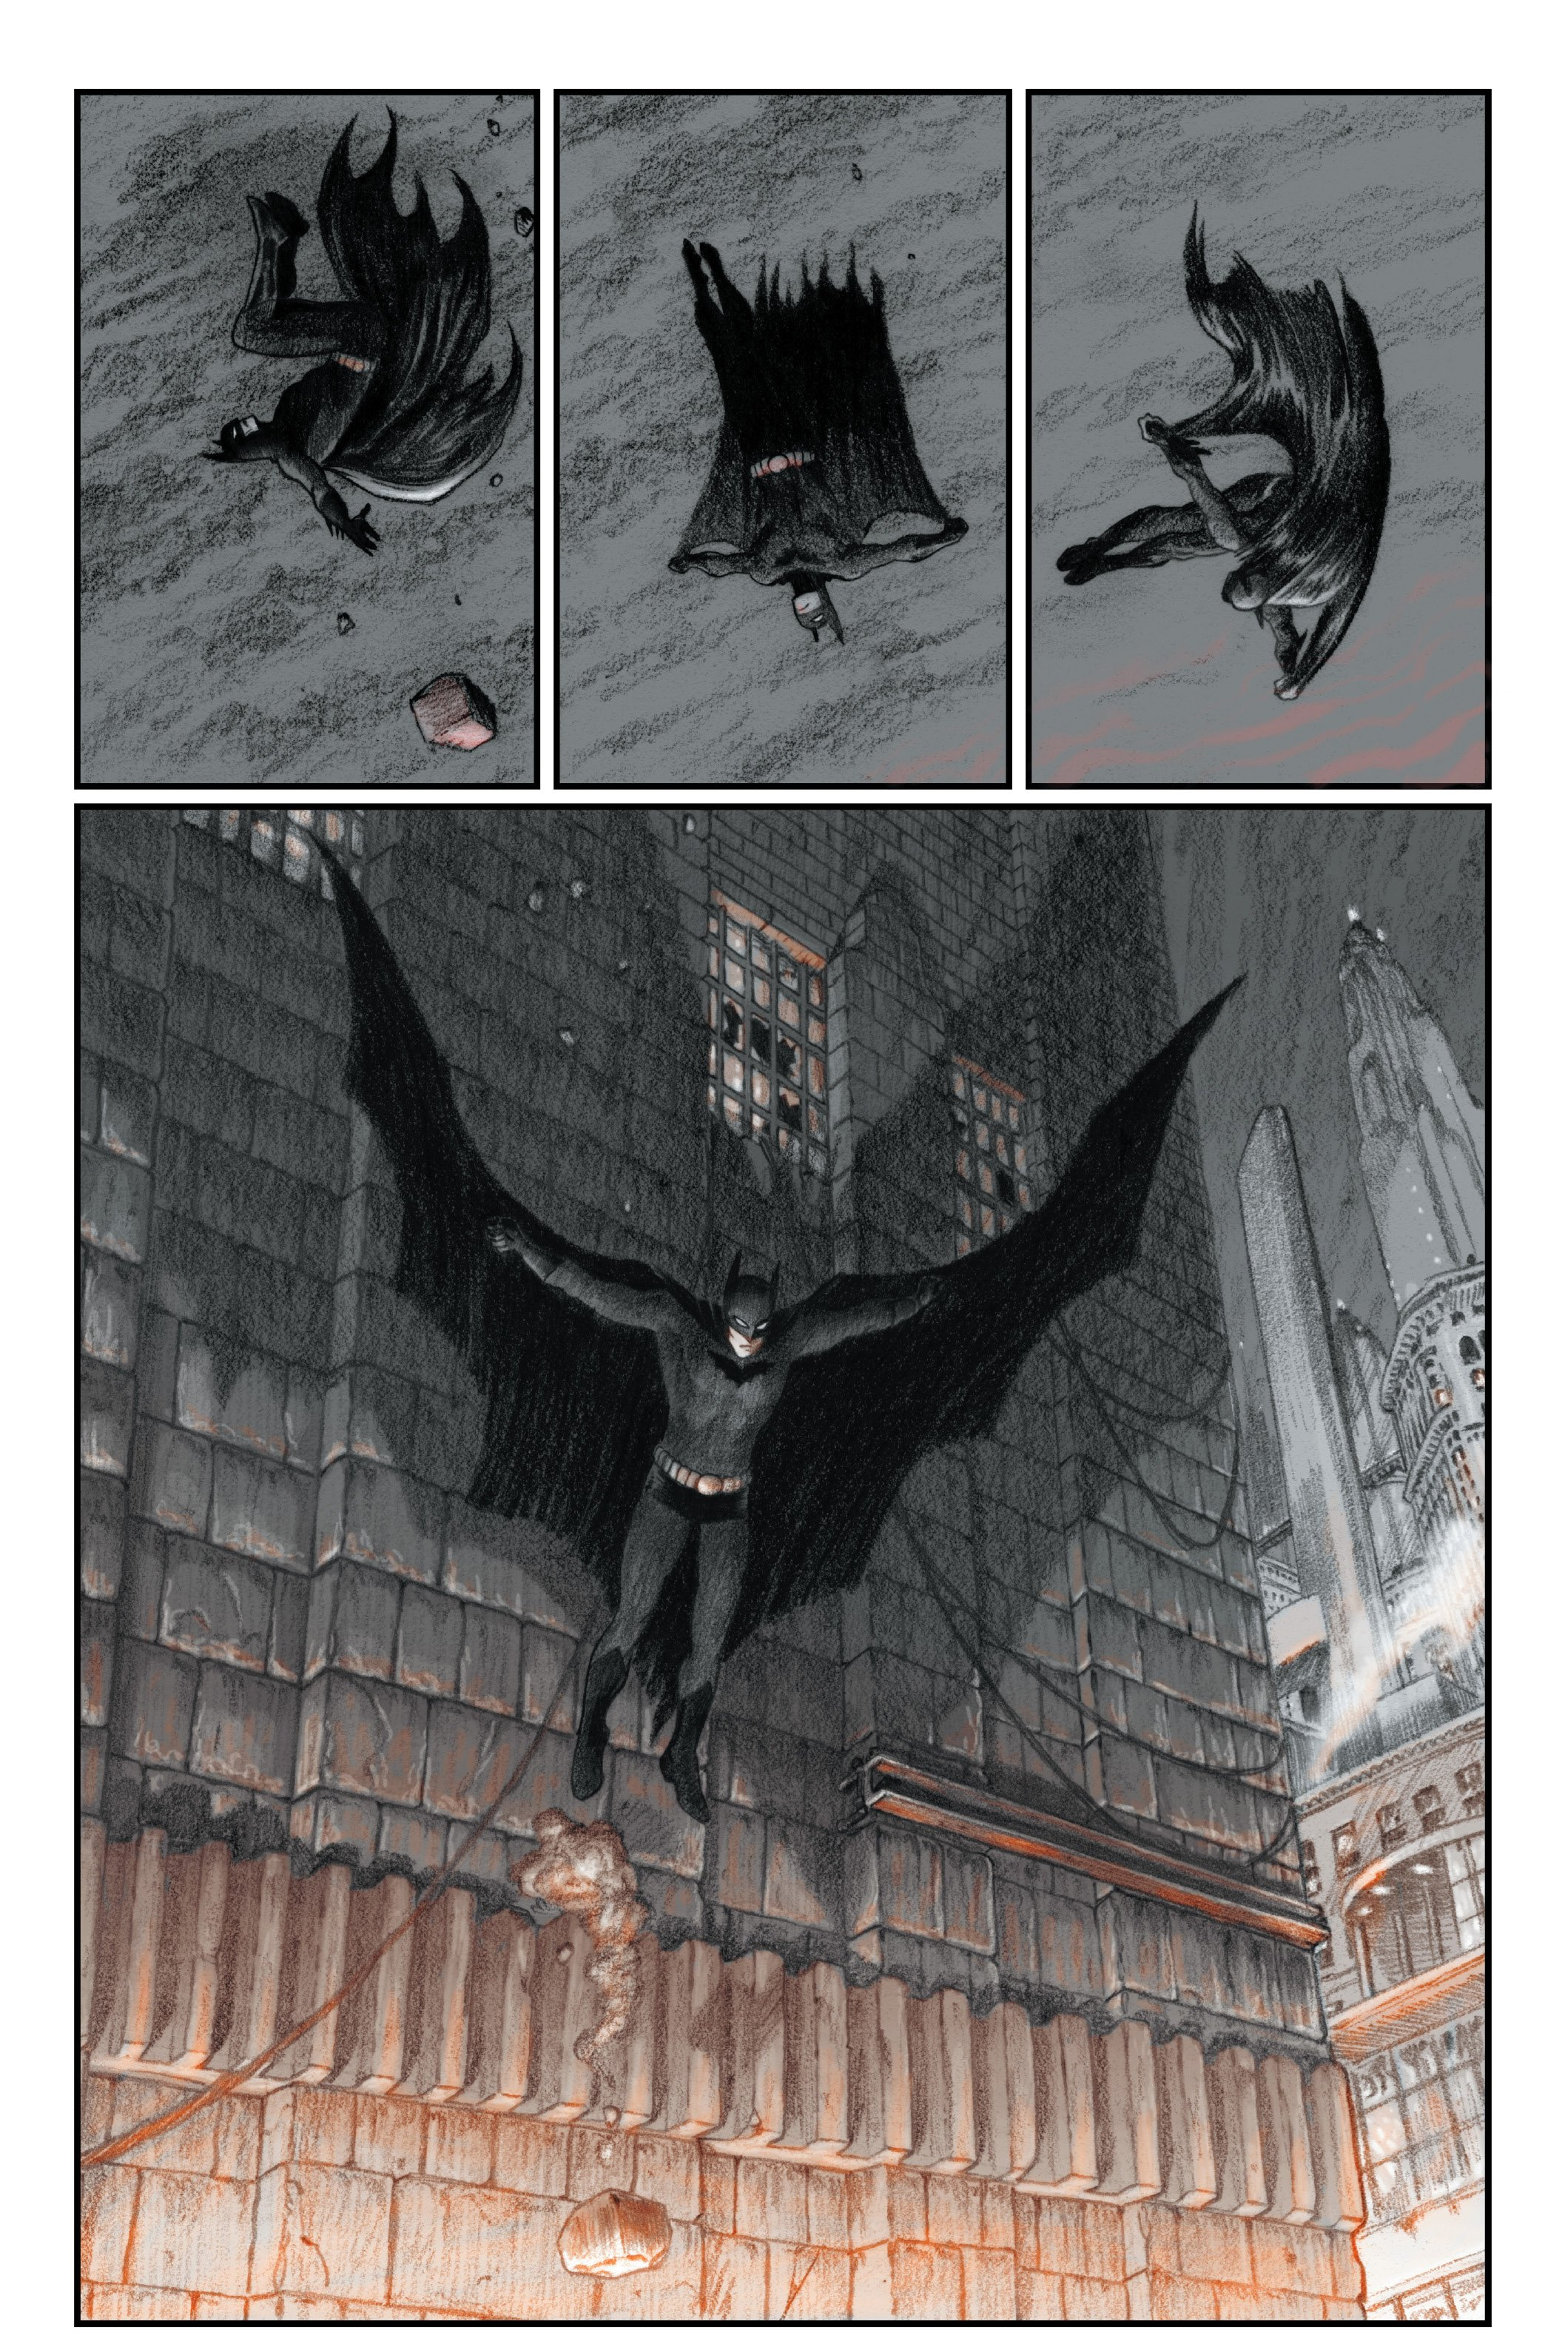 excerpt from Chip Kidd Batman Death By Design